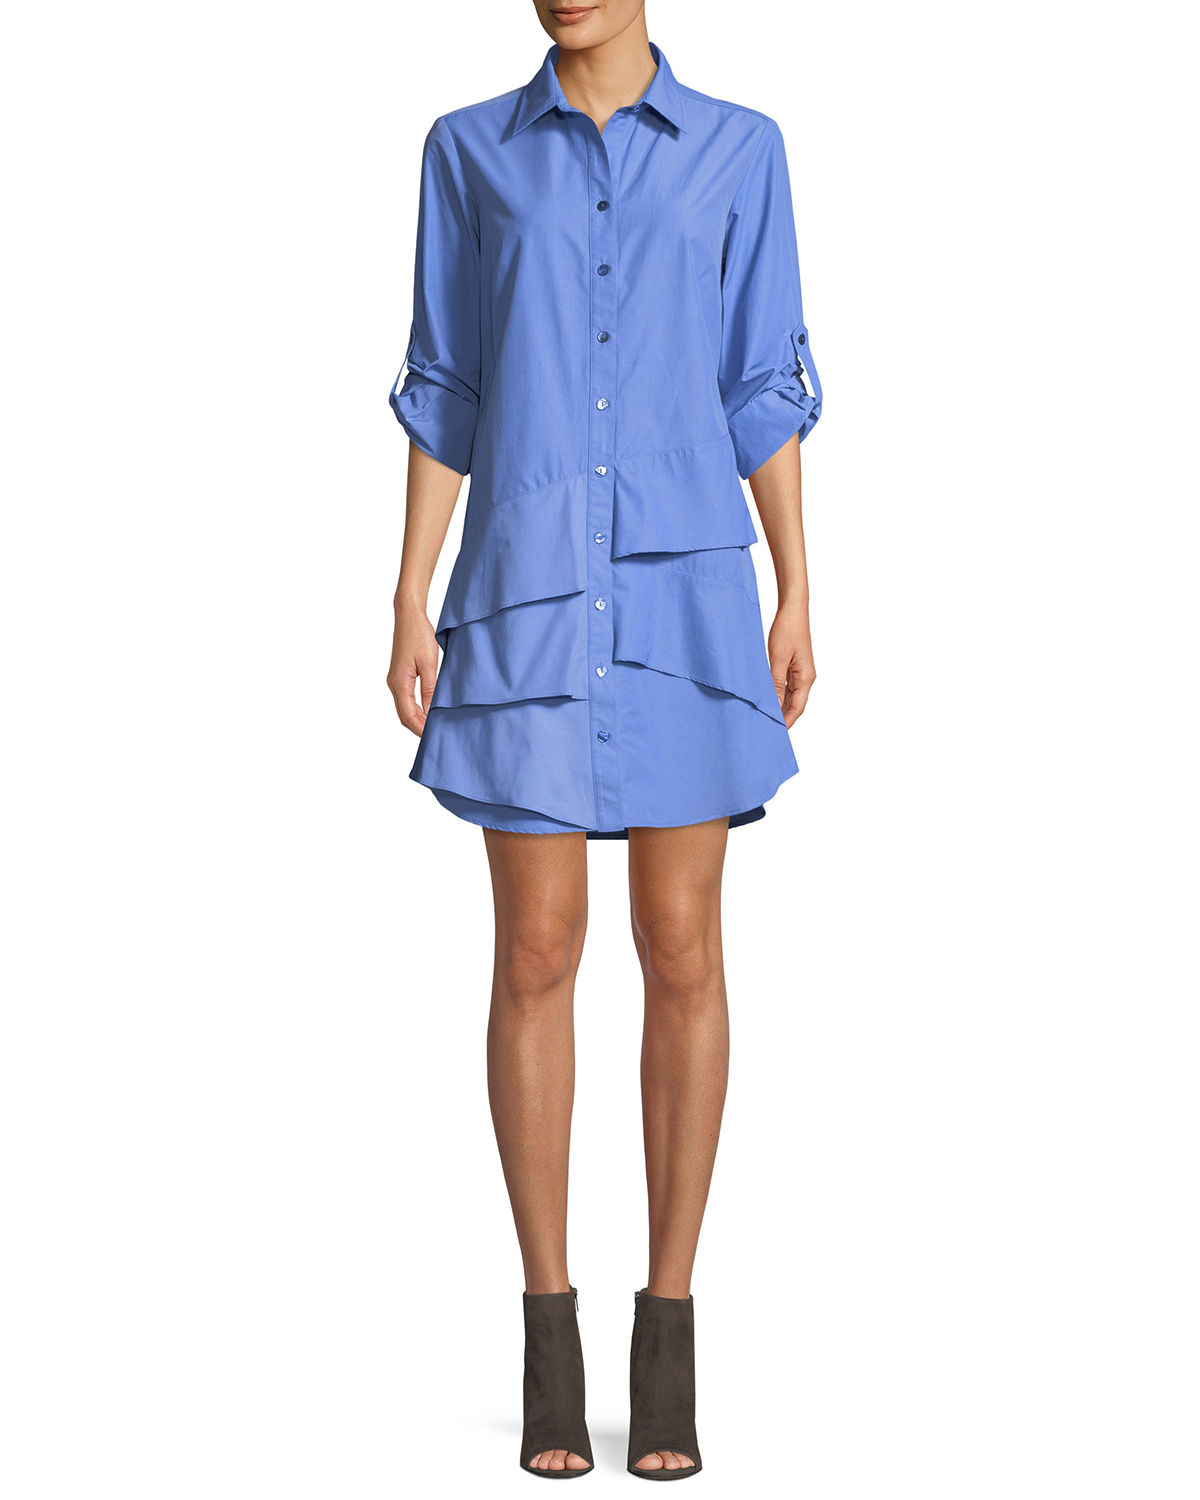 Finley JENNA EASY RUFFLE-TIERED SHIRTDRESS